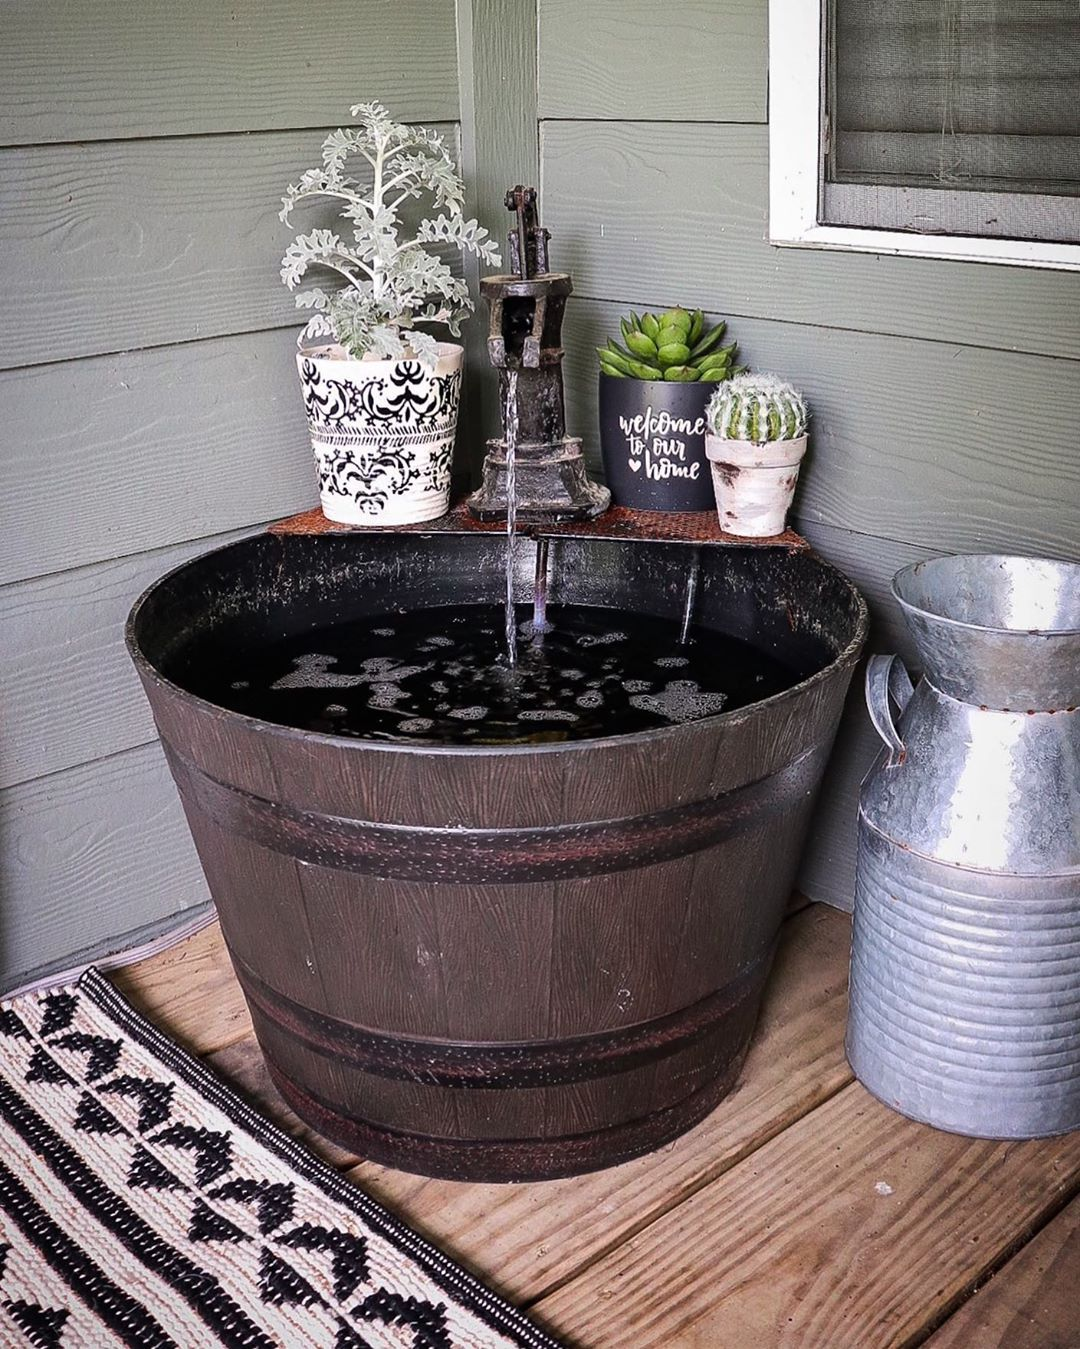 Amber On Instagram Since I Shared My Porch Earlier I Ve Had A Few Ask About My Antique Water Fountain I Original Farmhouse Diy Water Fountain Fountain